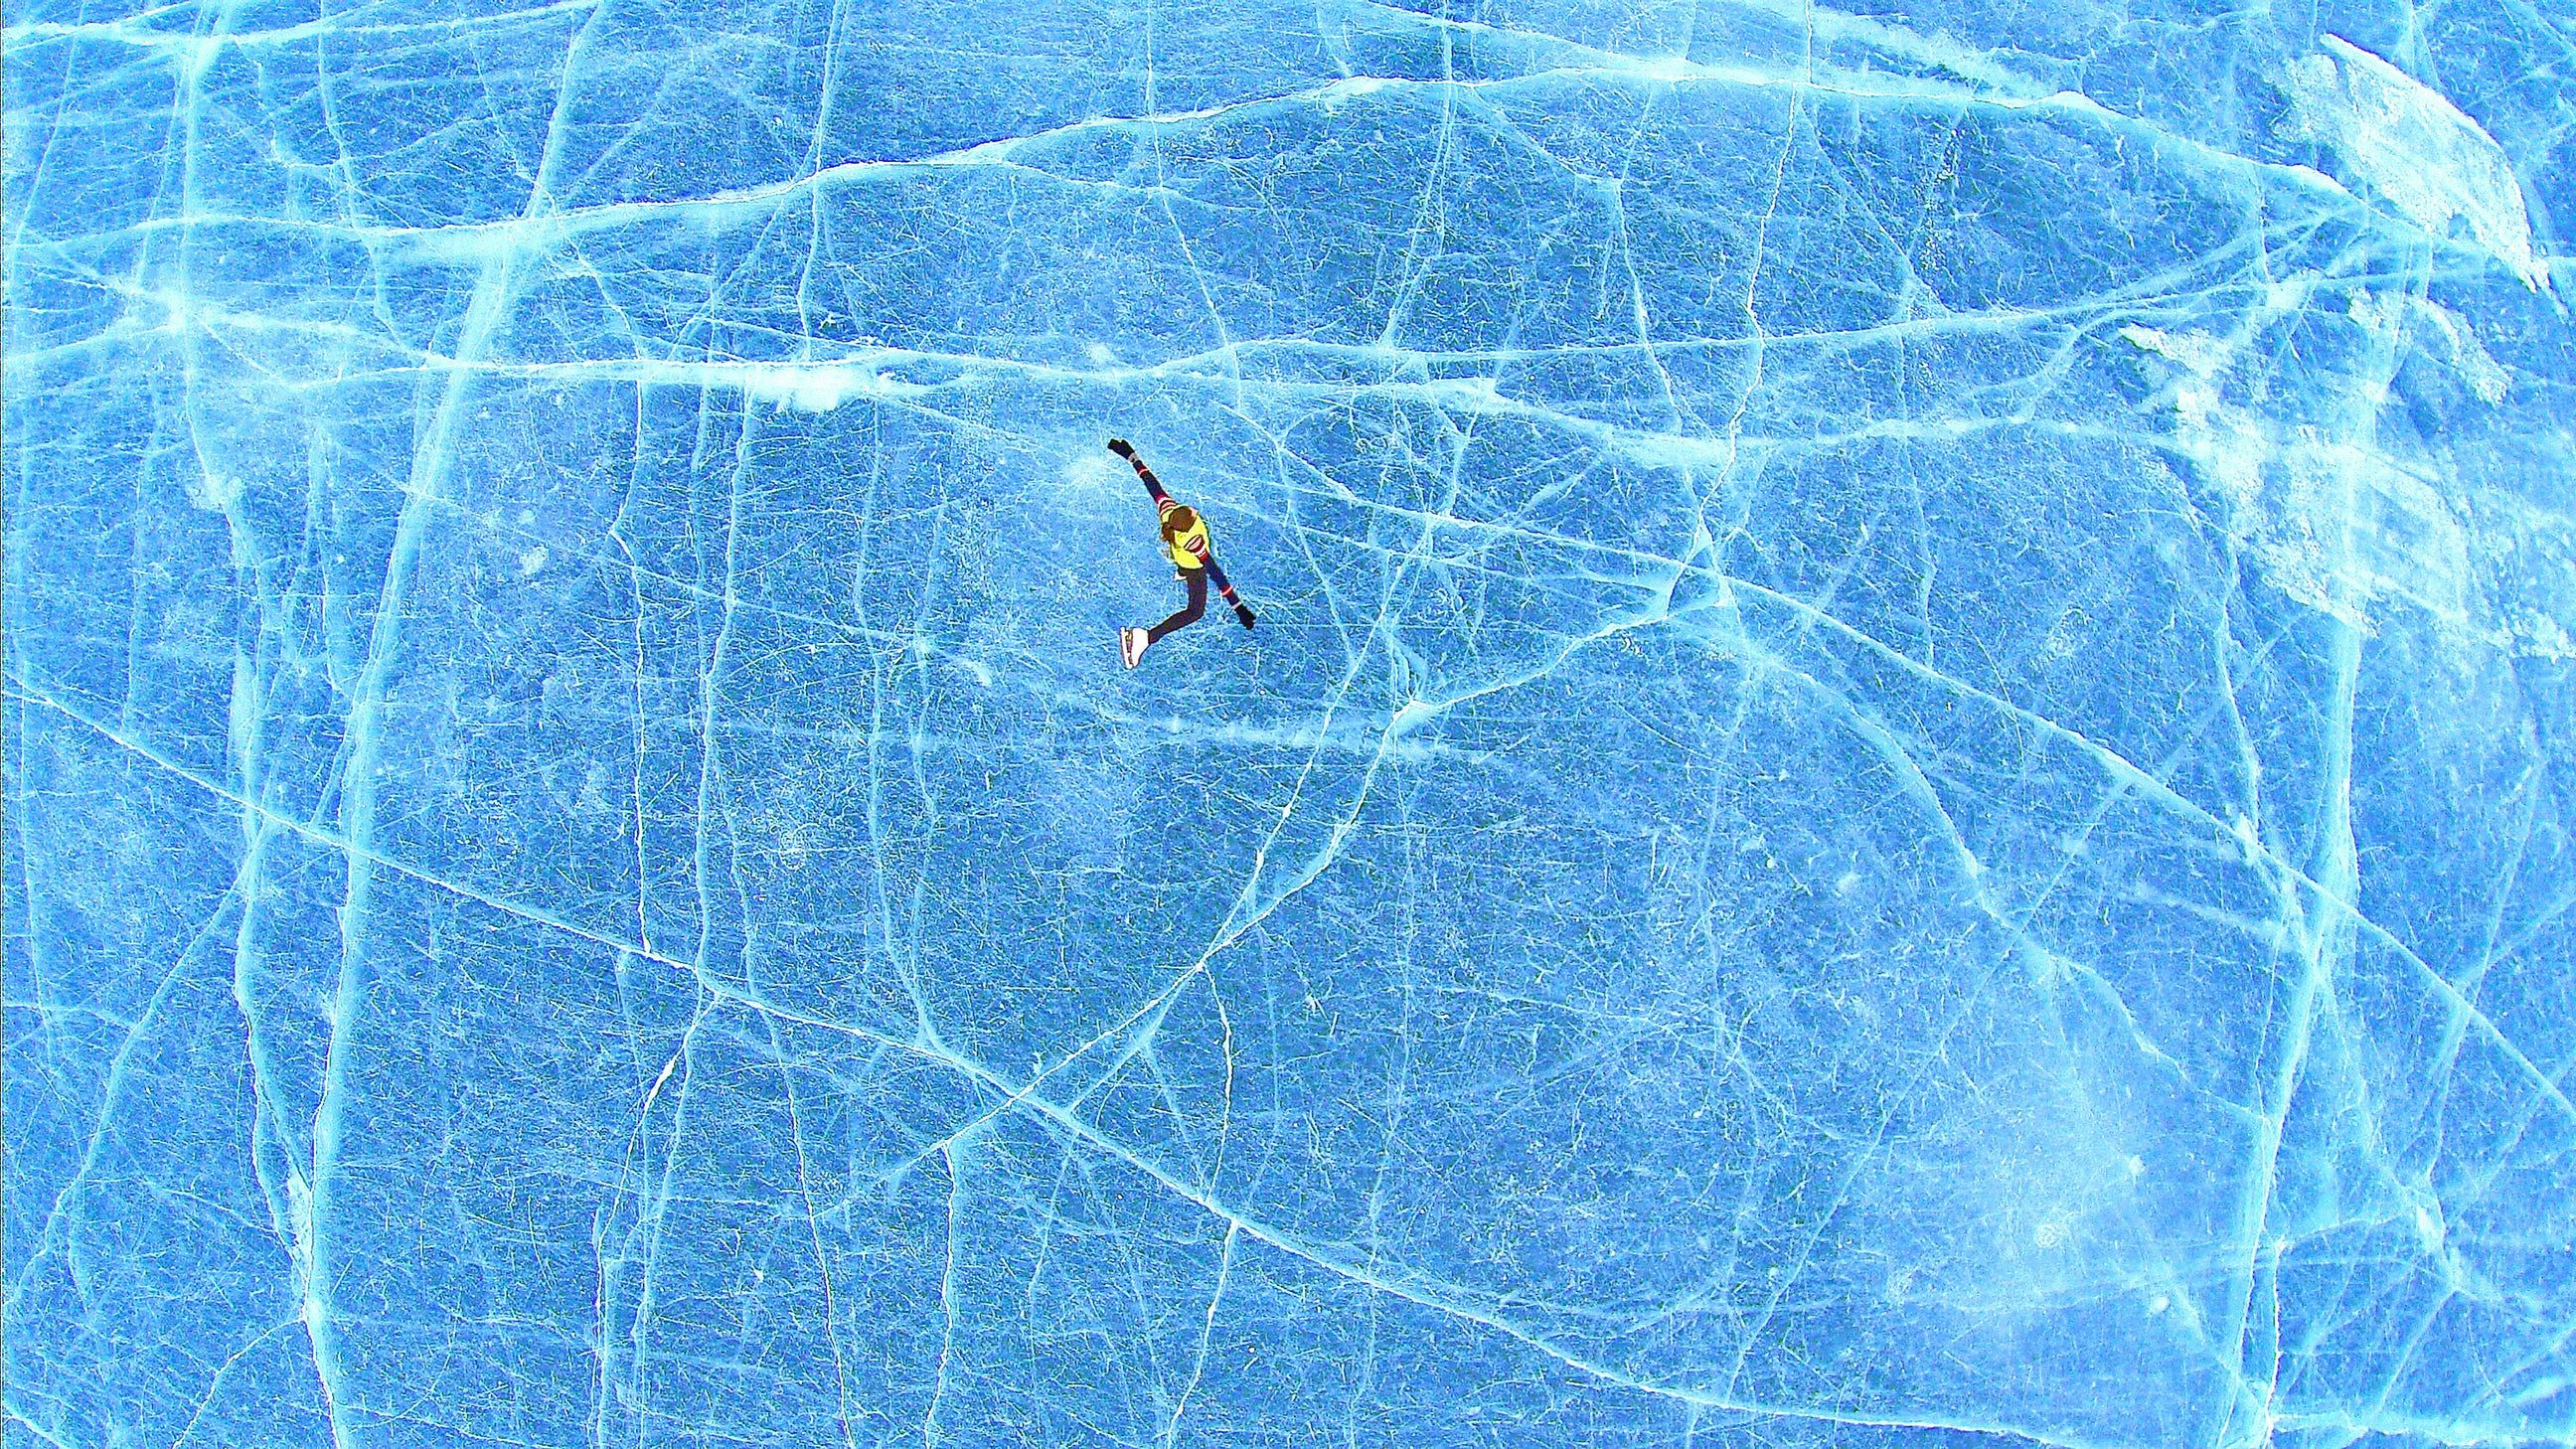 Ice Hockey Pictures Download Free Images On Unsplash Aerial Photography Social Media Photography Winter Images